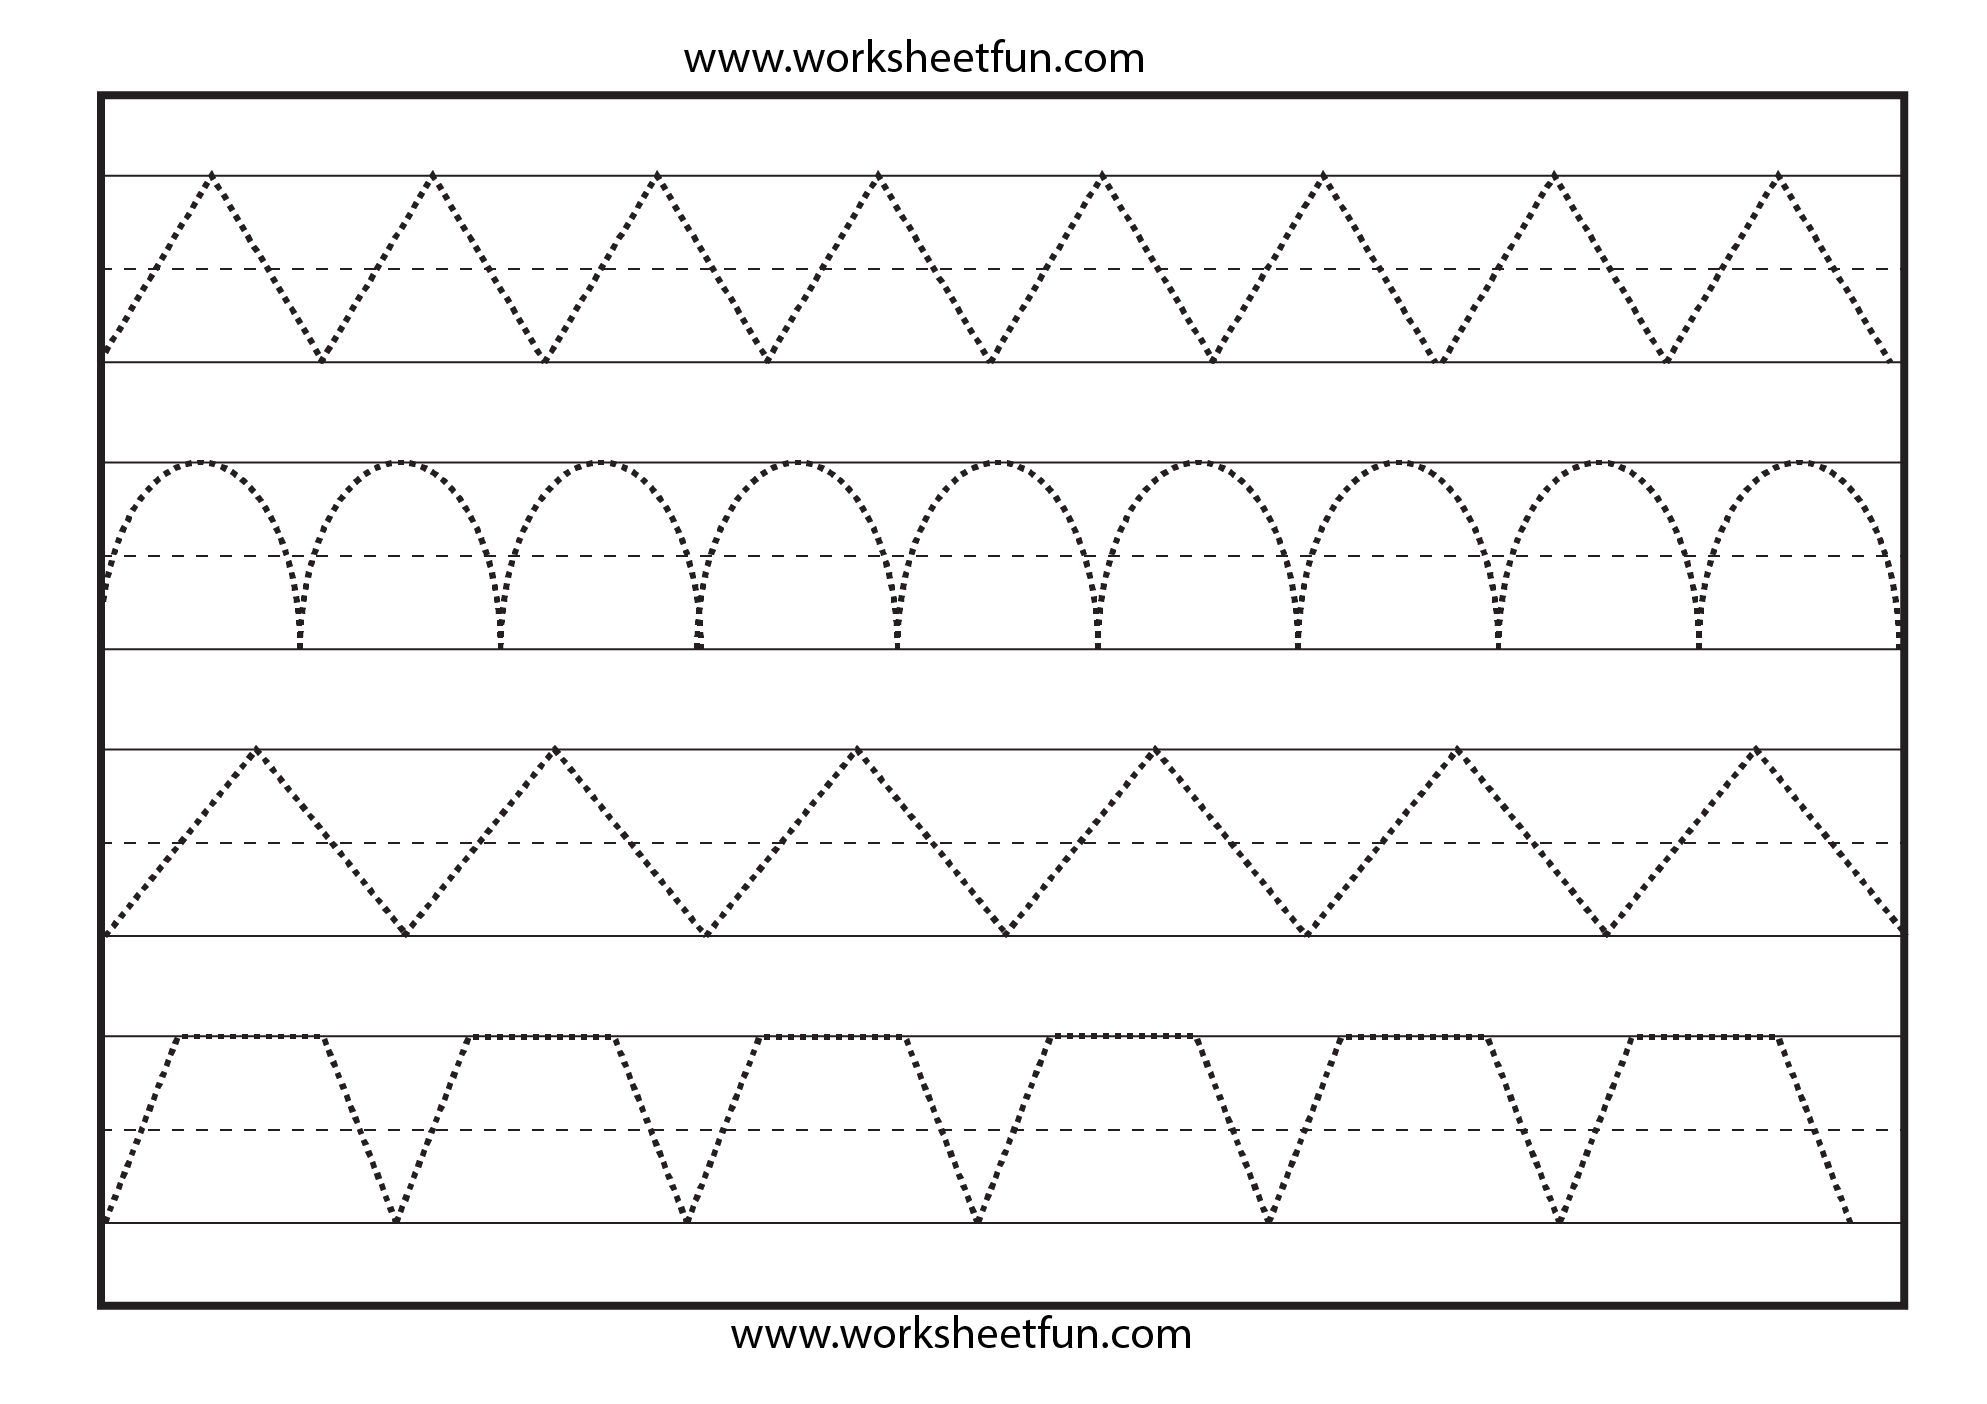 worksheet Pre K Tracing Worksheets line tracing 1 worksheet free printable worksheets worksheetfun preschool tracing